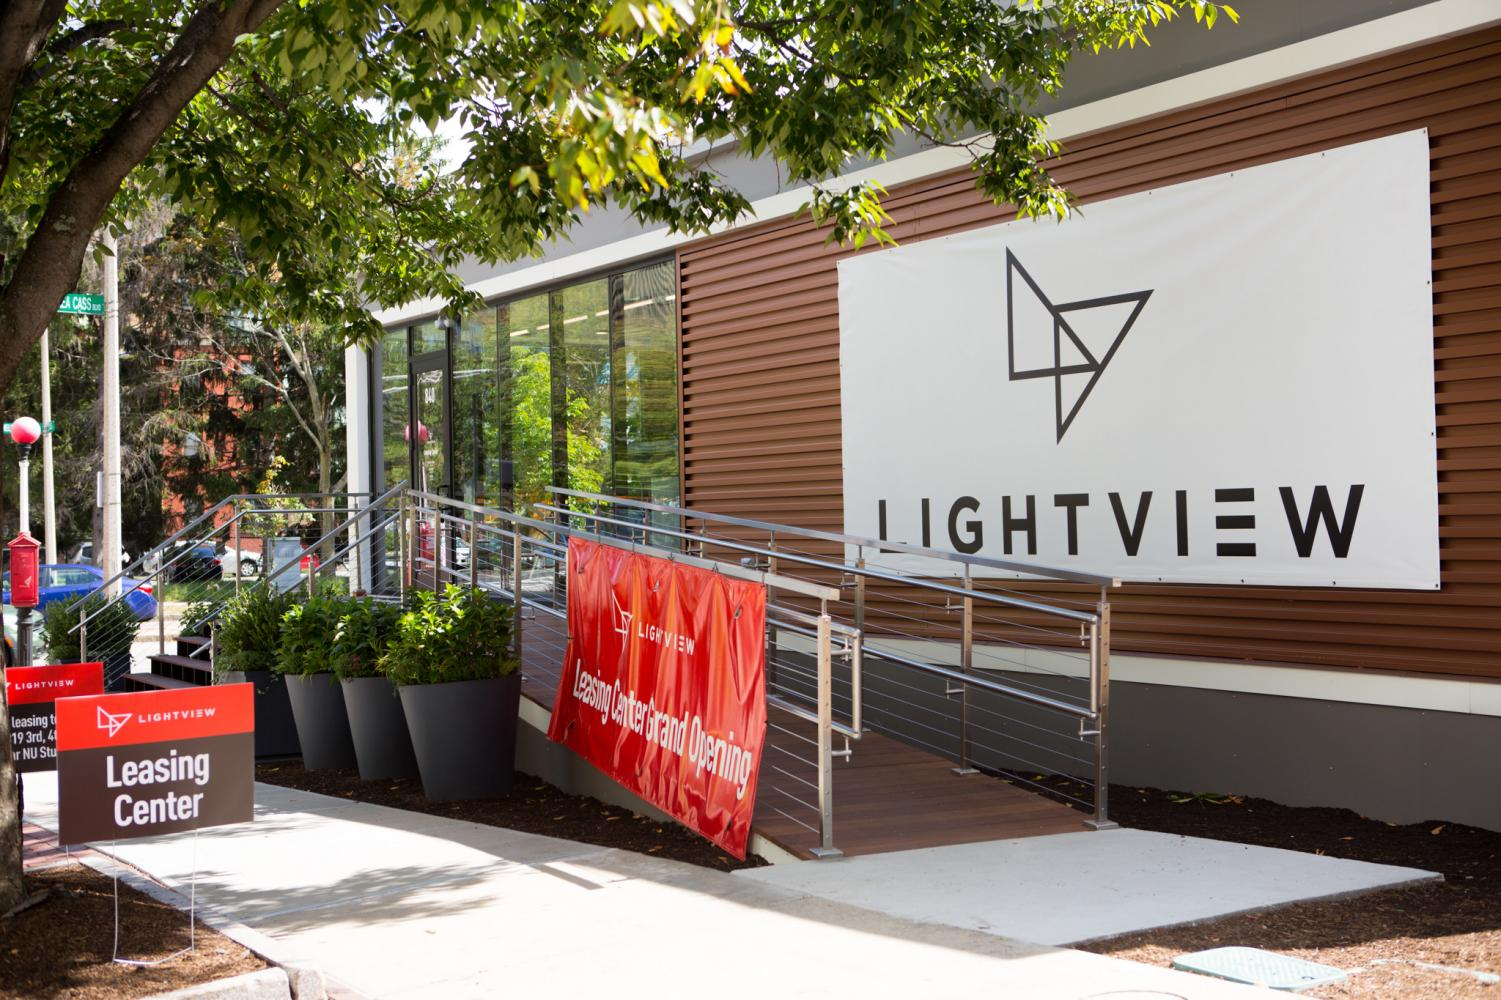 The LightView office at 840 Columbus Ave. allows students to tour a model apartment.